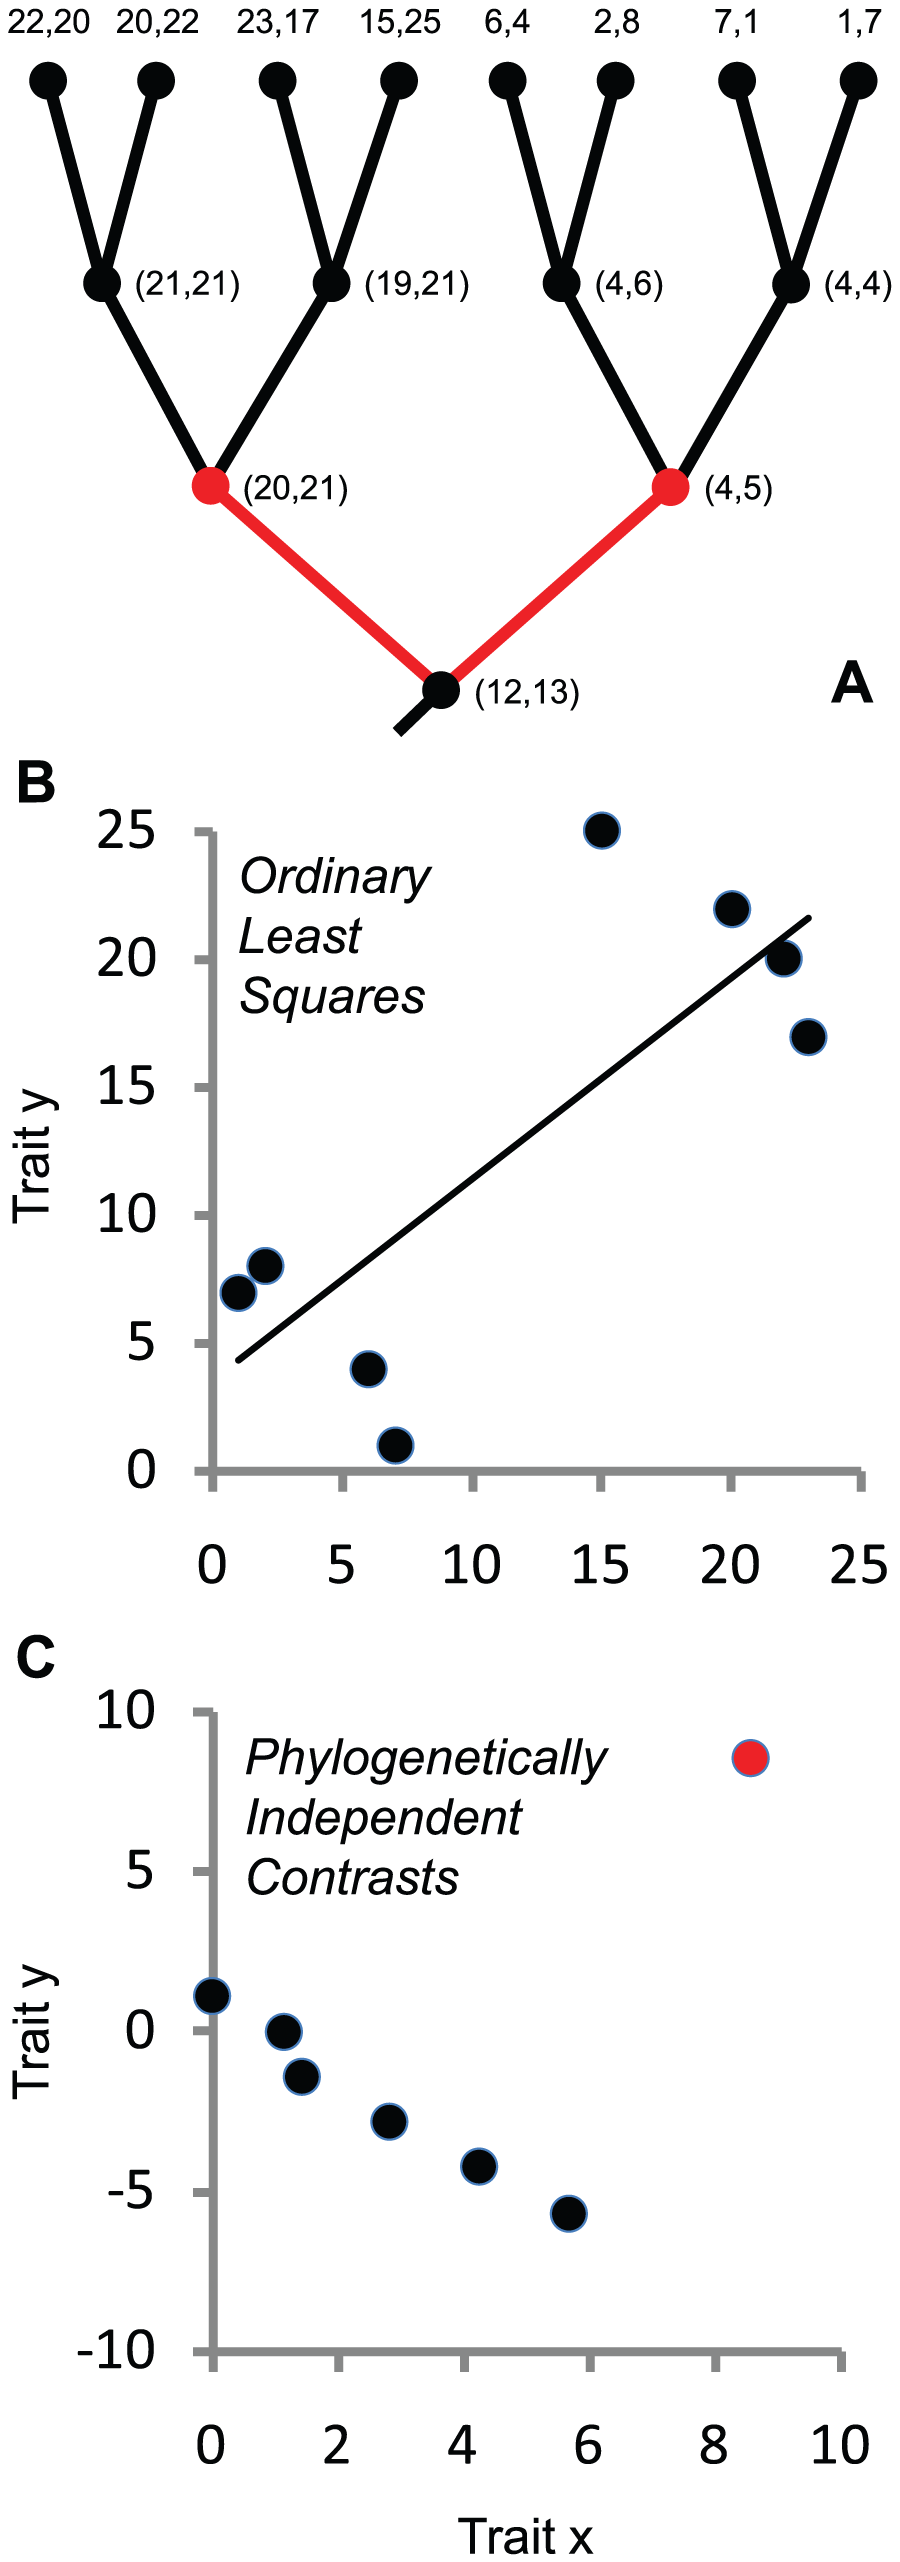 Ignoring phylogenetic history can lead to incorrect conclusions about the nature of evolutionary associations between traits.